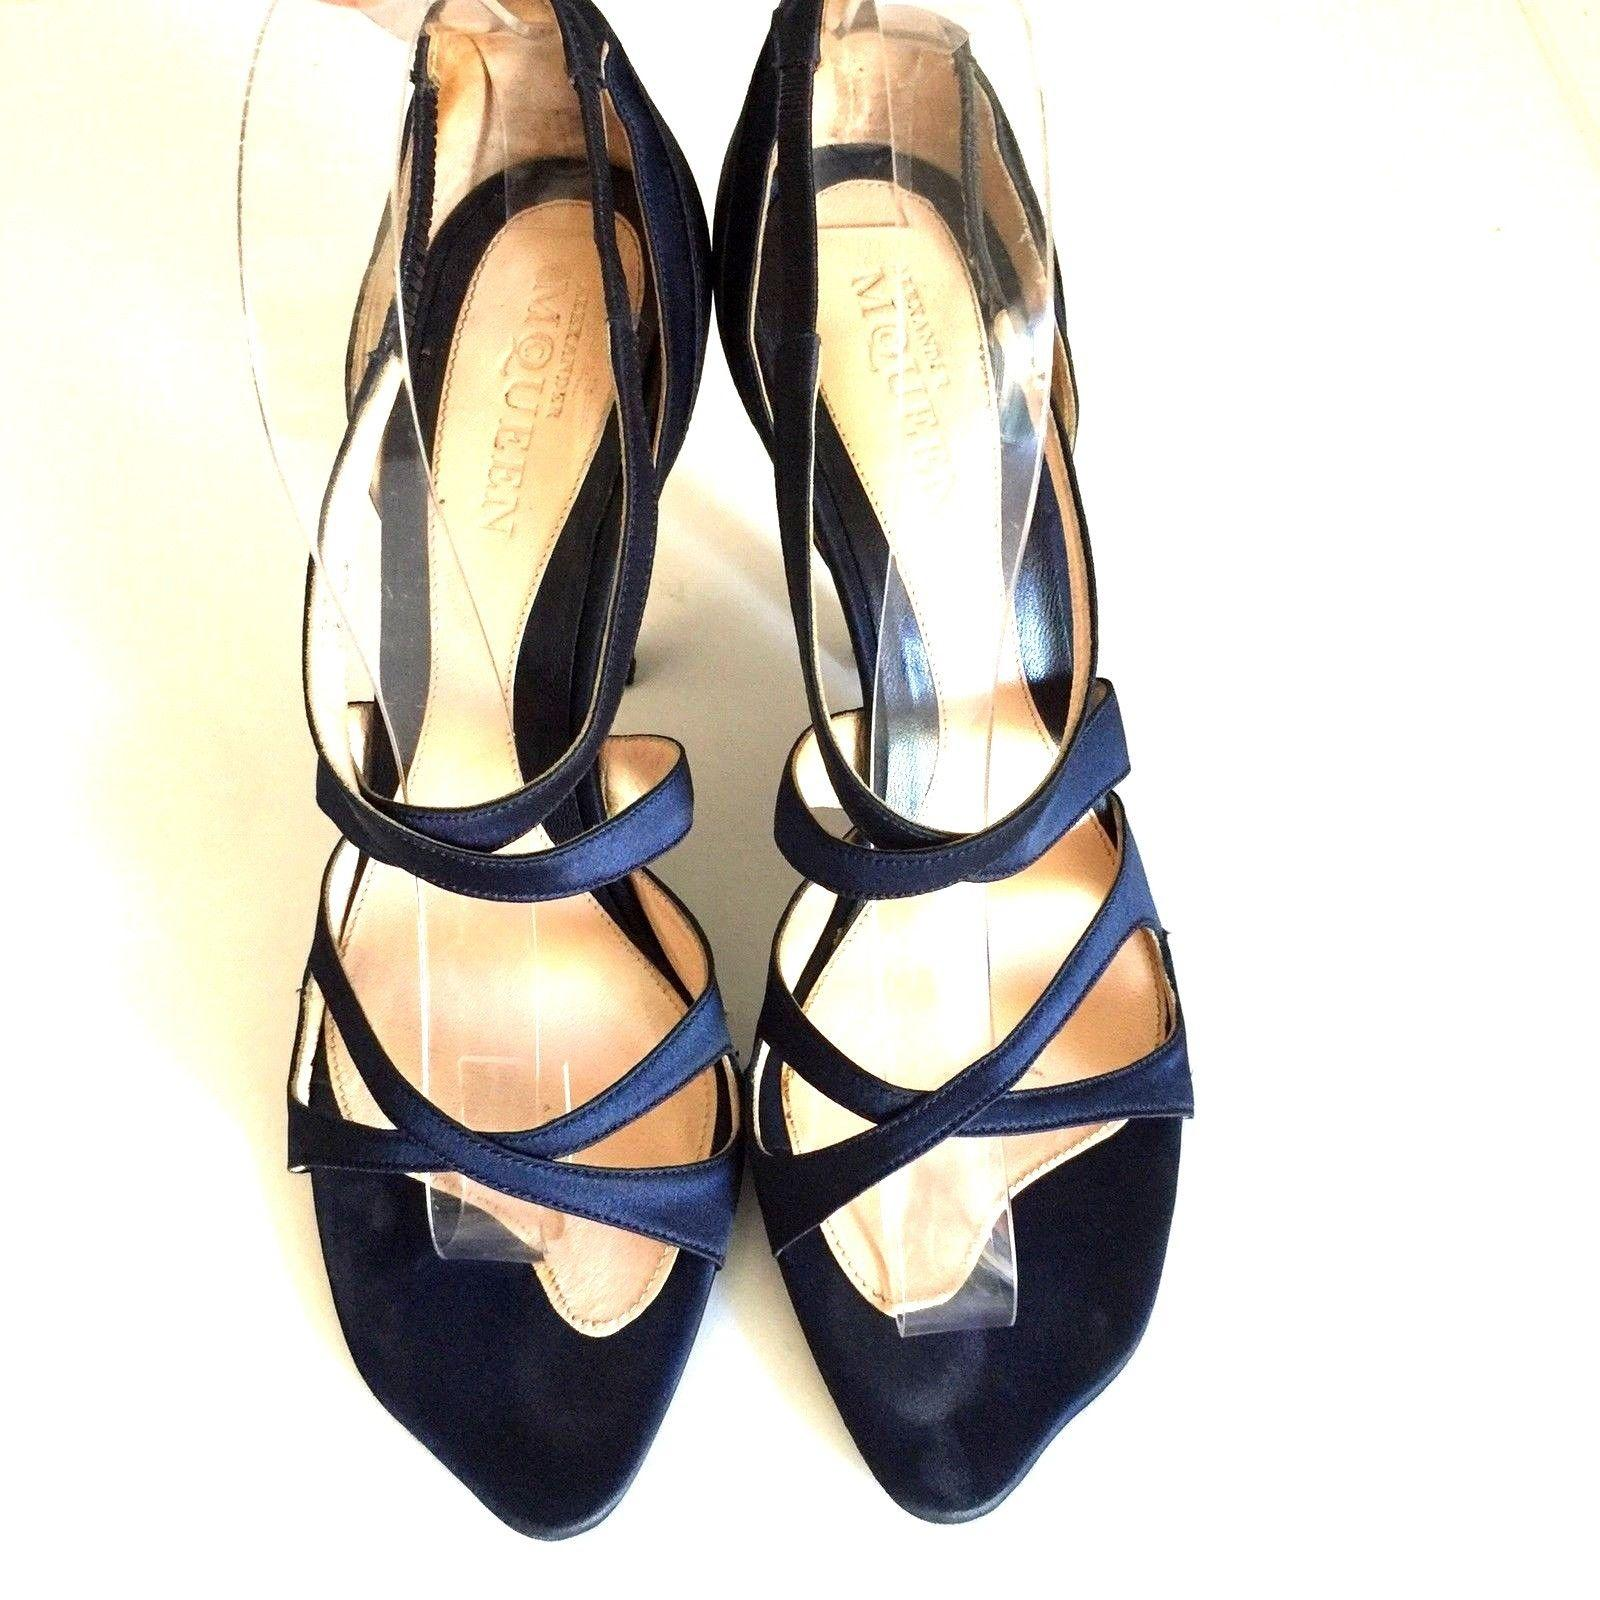 4e24450cfc73 ... Alexander McQueen Blue Strappy Satin Open Toe Criss Cross Cross Cross  Curved Heel Sandals Size US ...